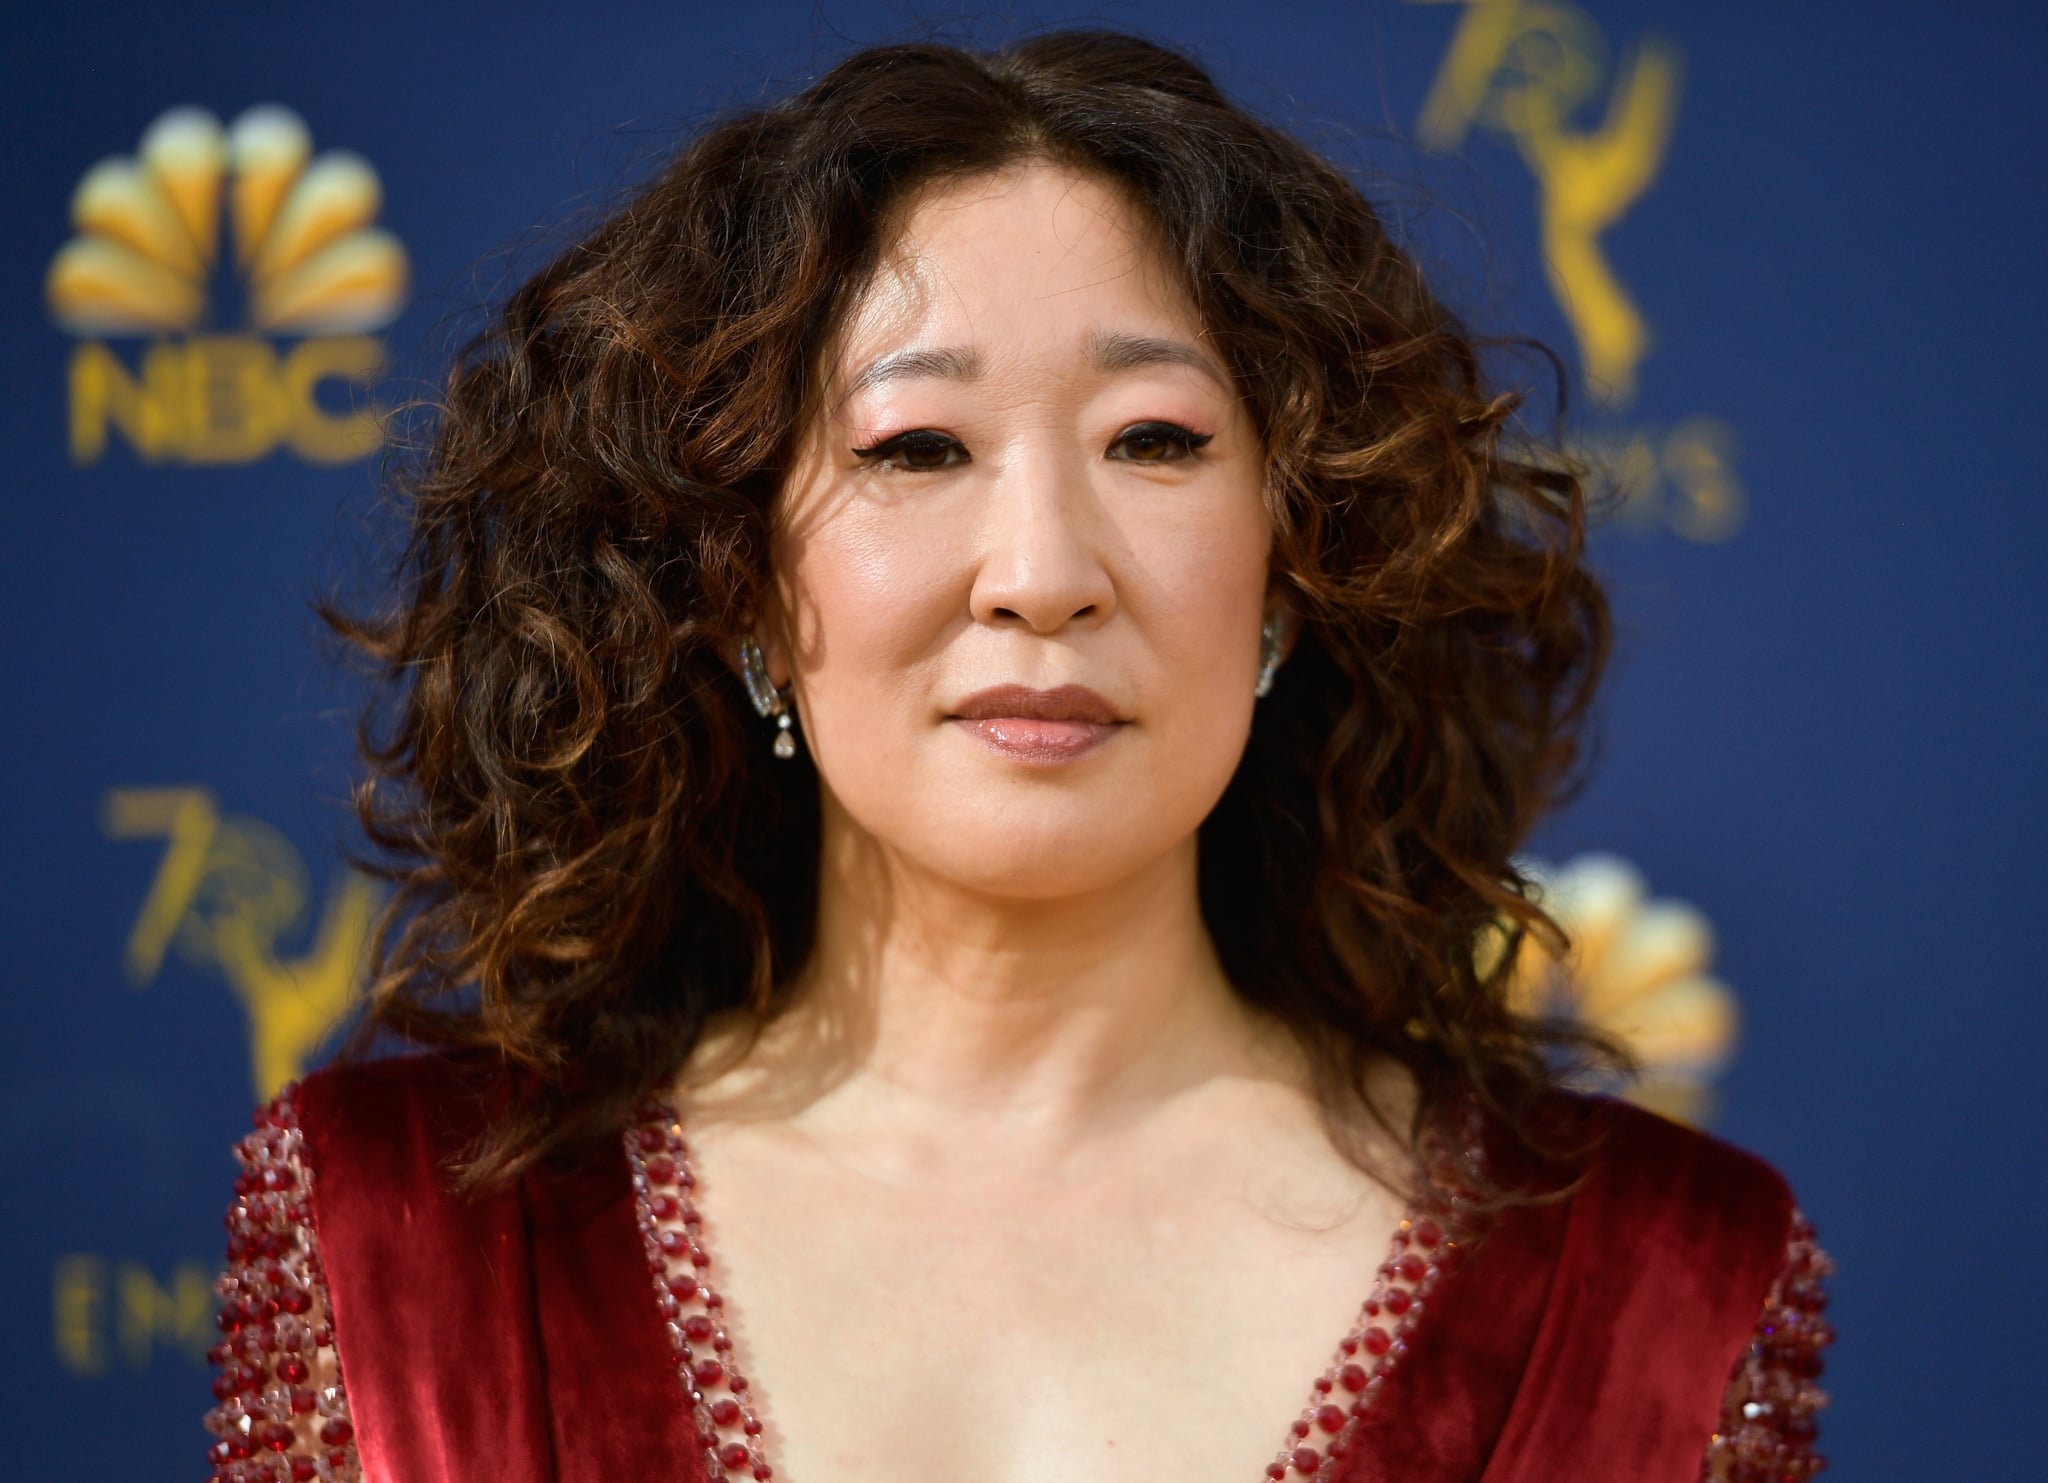 LOS ANGELES, CA - SEPTEMBER 17: Sandra Oh attends the 70th Emmy Awards at